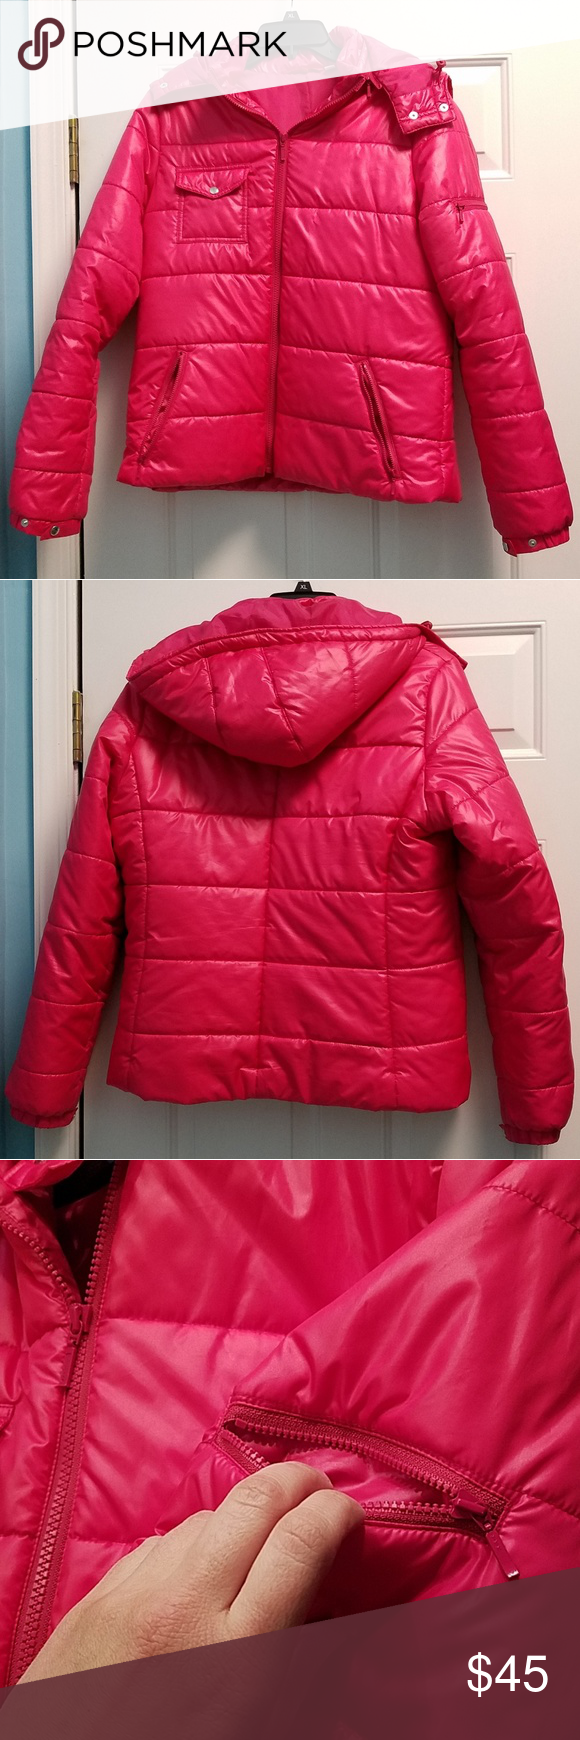 Size L Uniqlo Hot Pink Puffer Jacket Pink Puffer Jacket Clothes Design Uniqlo Jackets [ 1740 x 580 Pixel ]